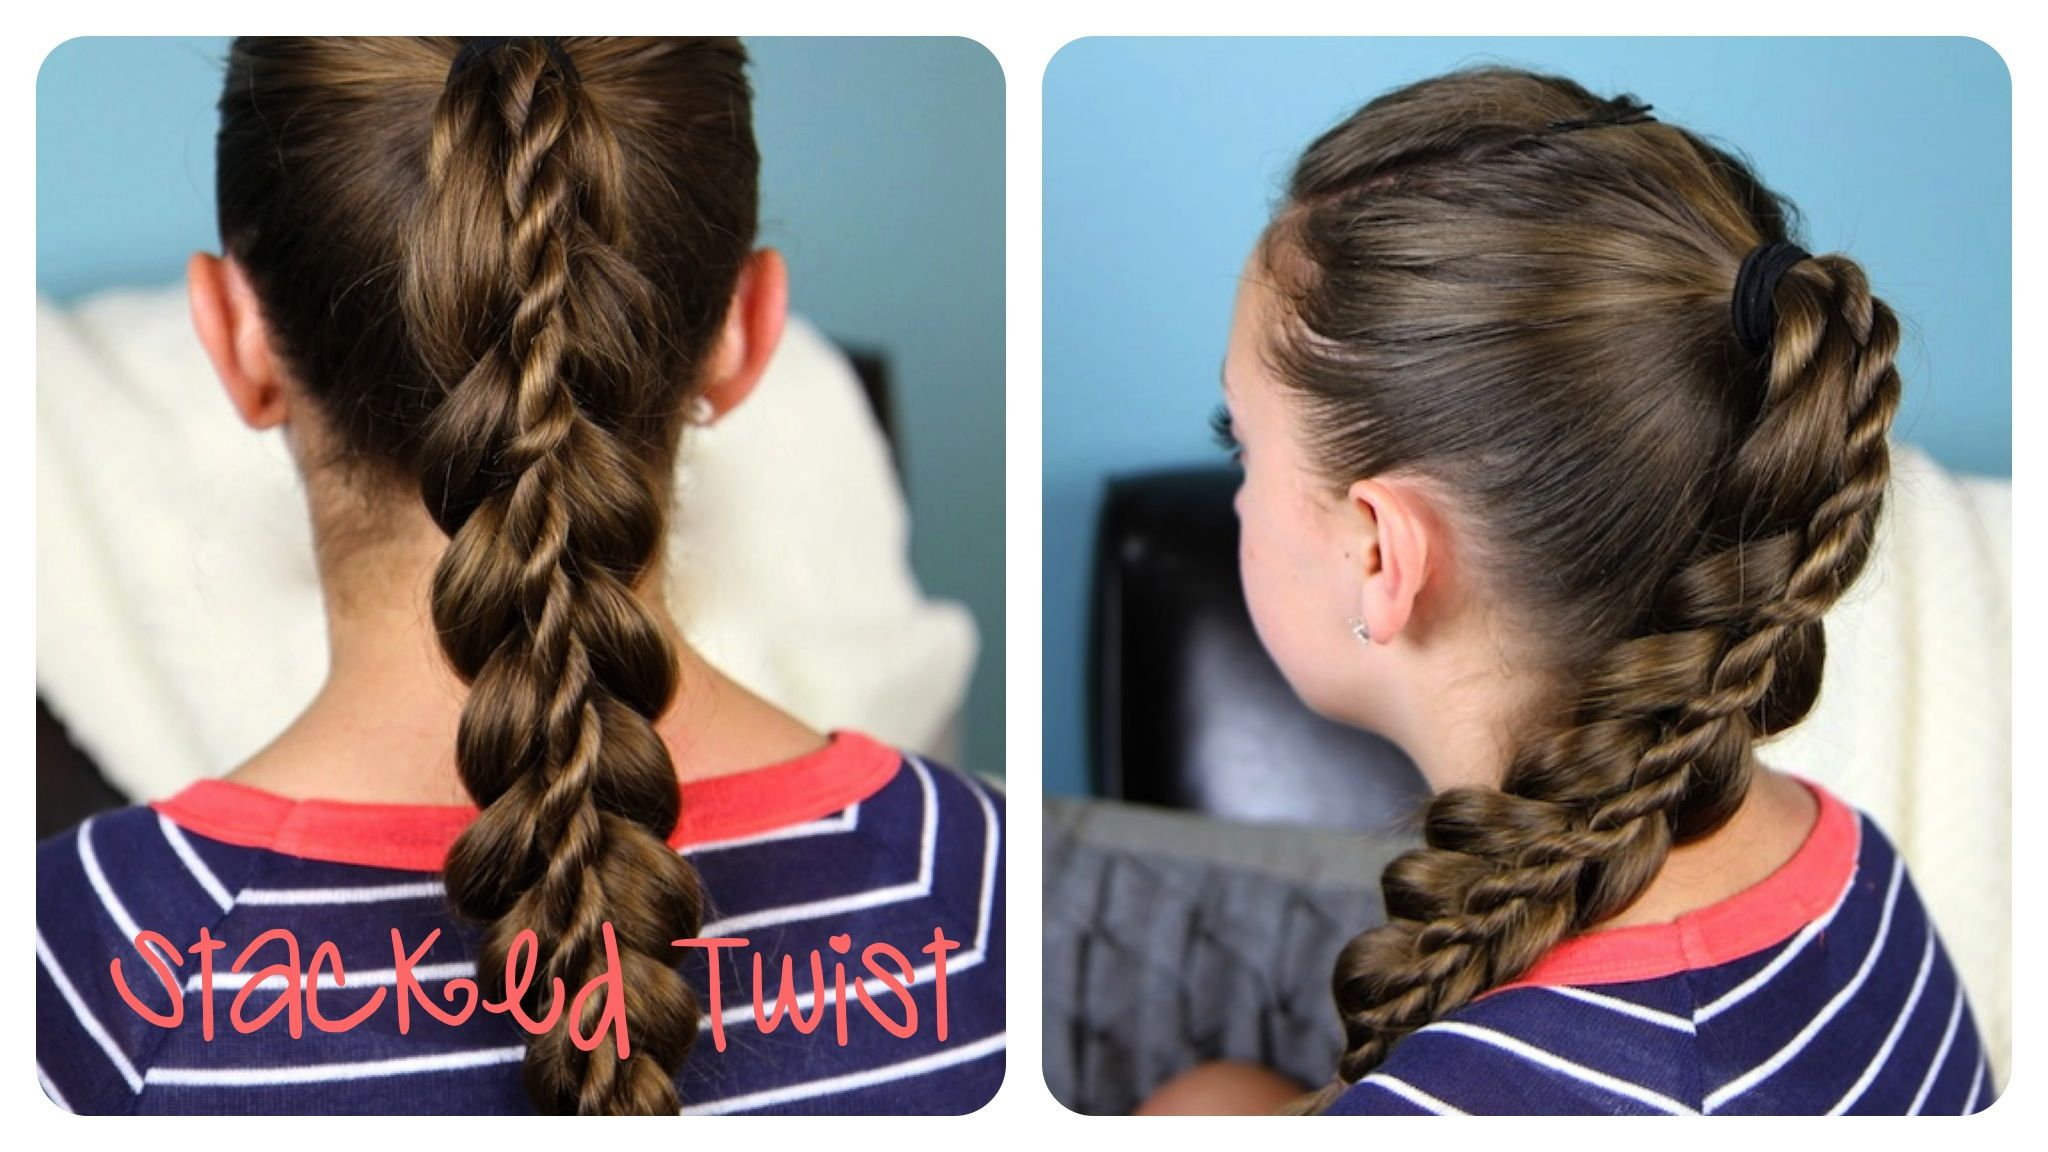 Cute Braid Hairstyles Fascinating Rope Braids  Cute Girls Hairstyles  Page 2  Cool Hairstyles